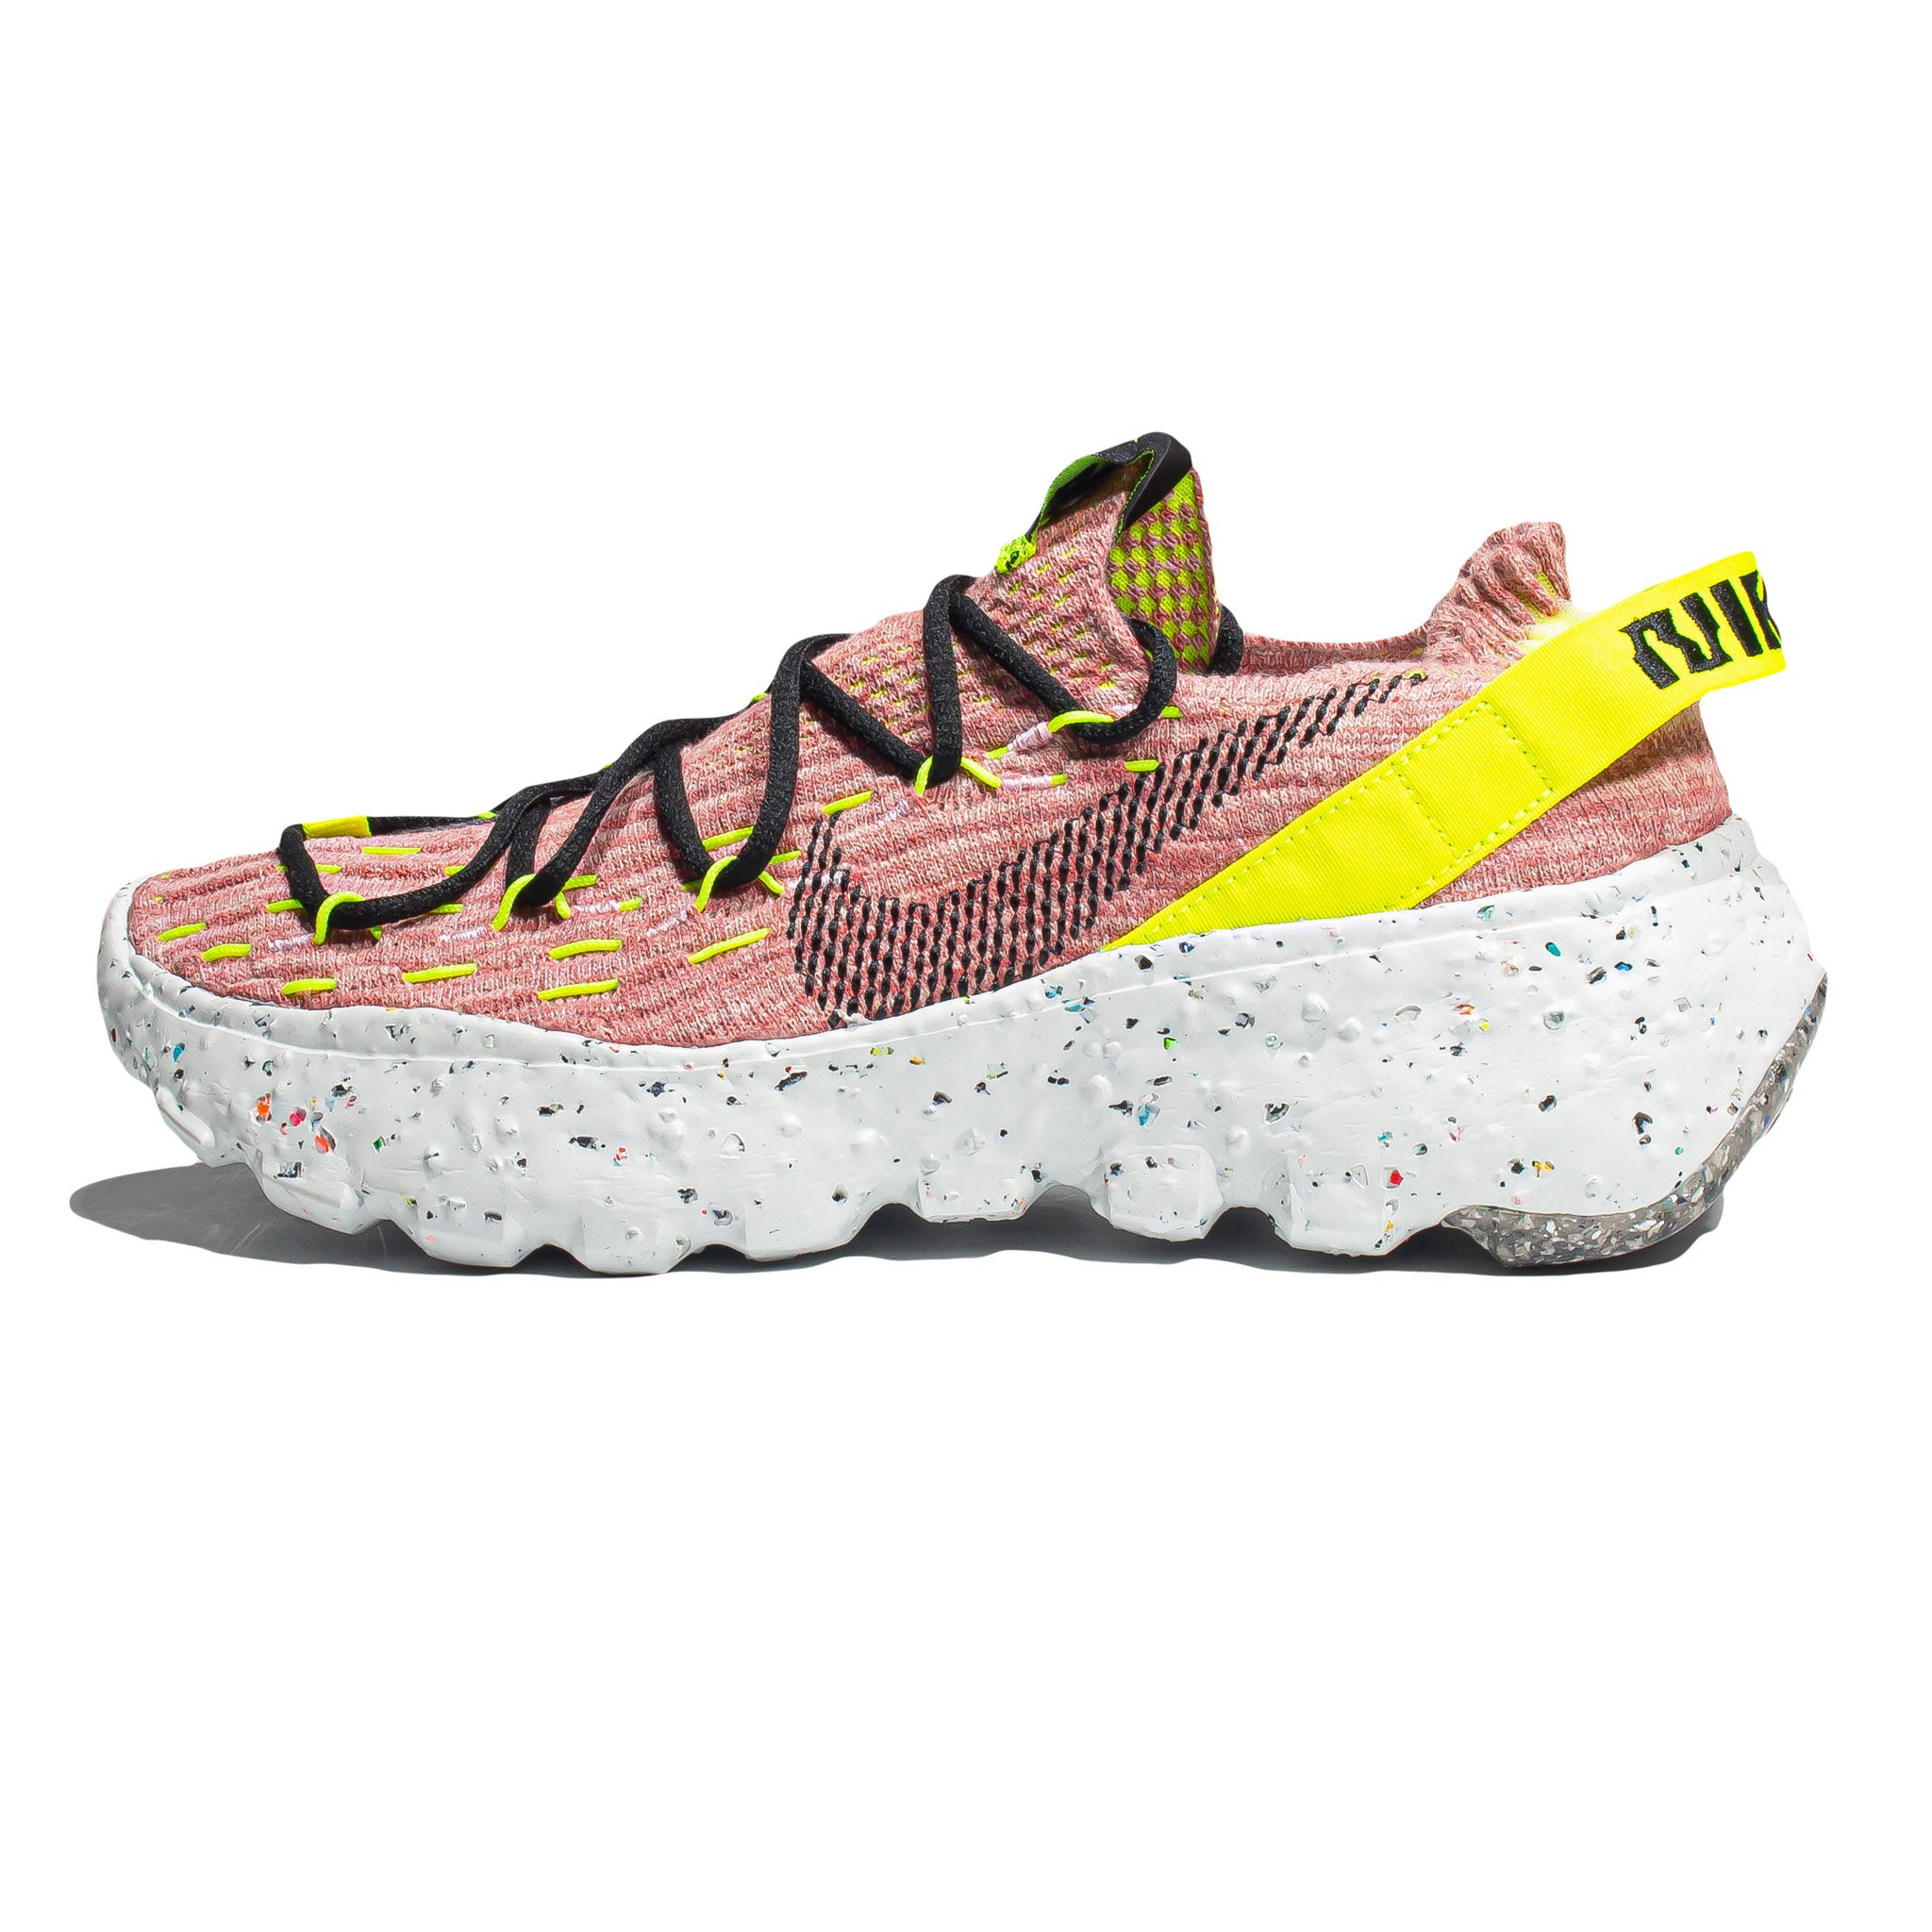 Nike Space Hippie 04 'Lemon Venom'